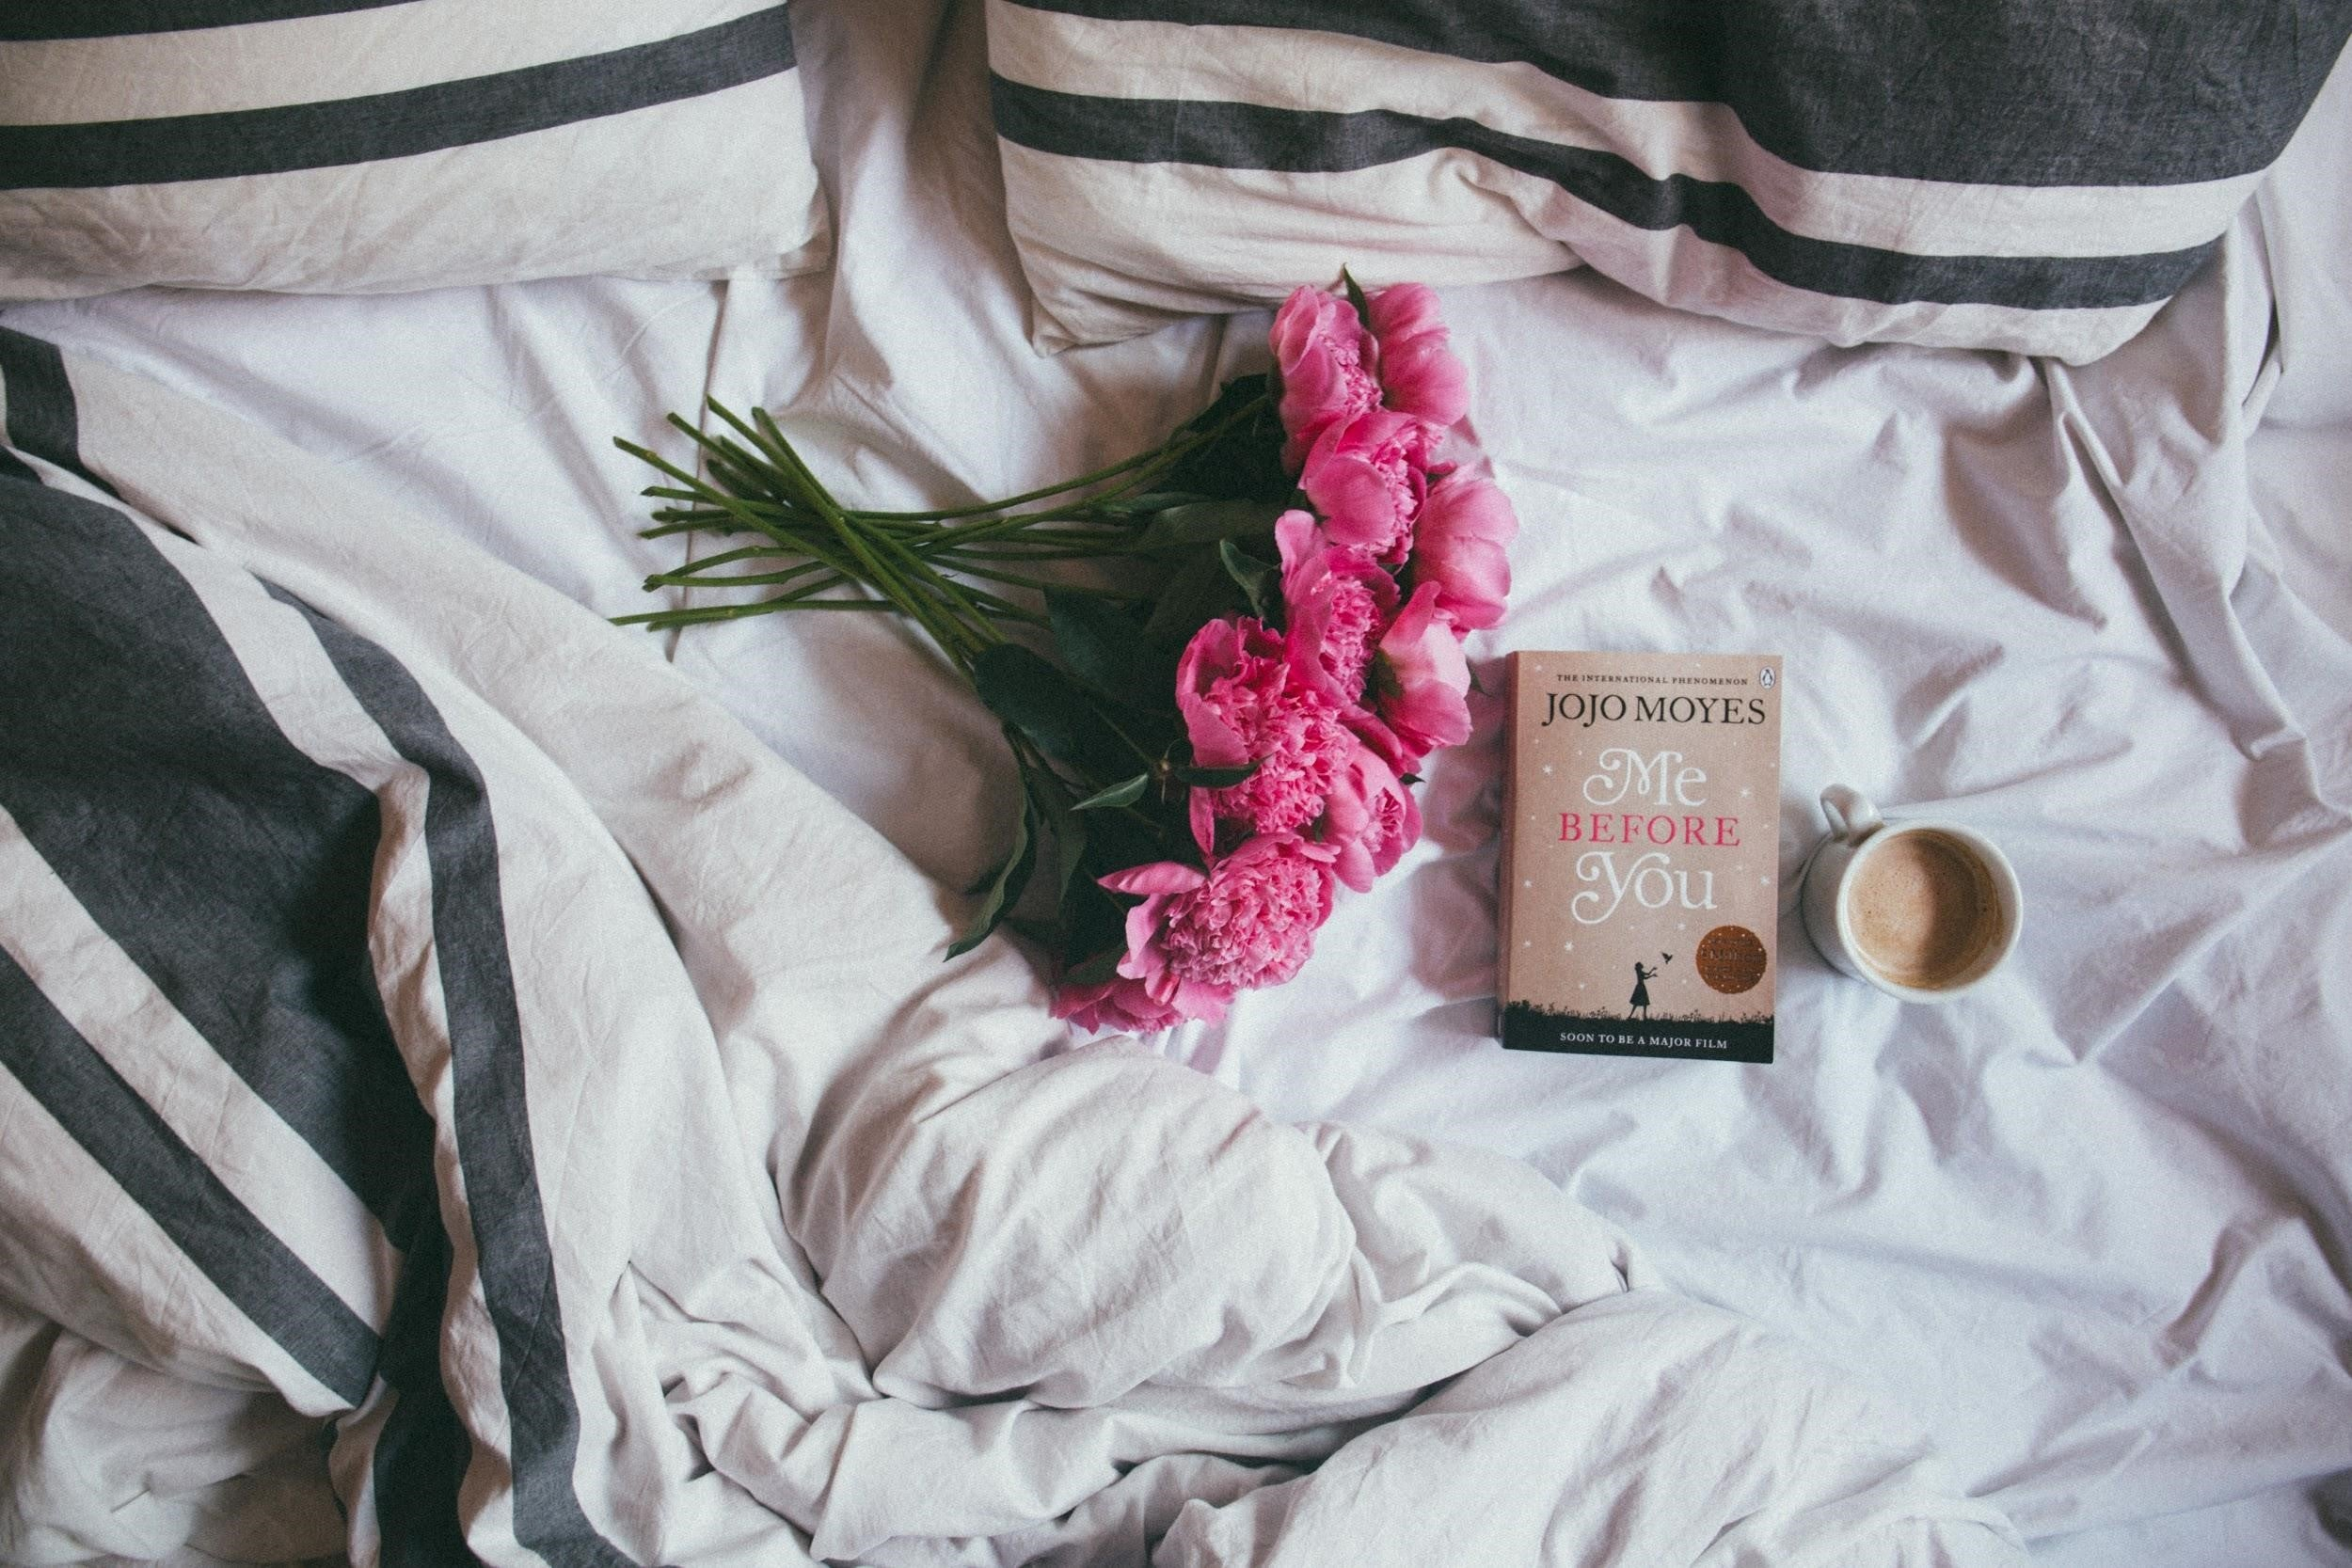 Flowers, A Book And A Coffee Cup On An Unmade Bed